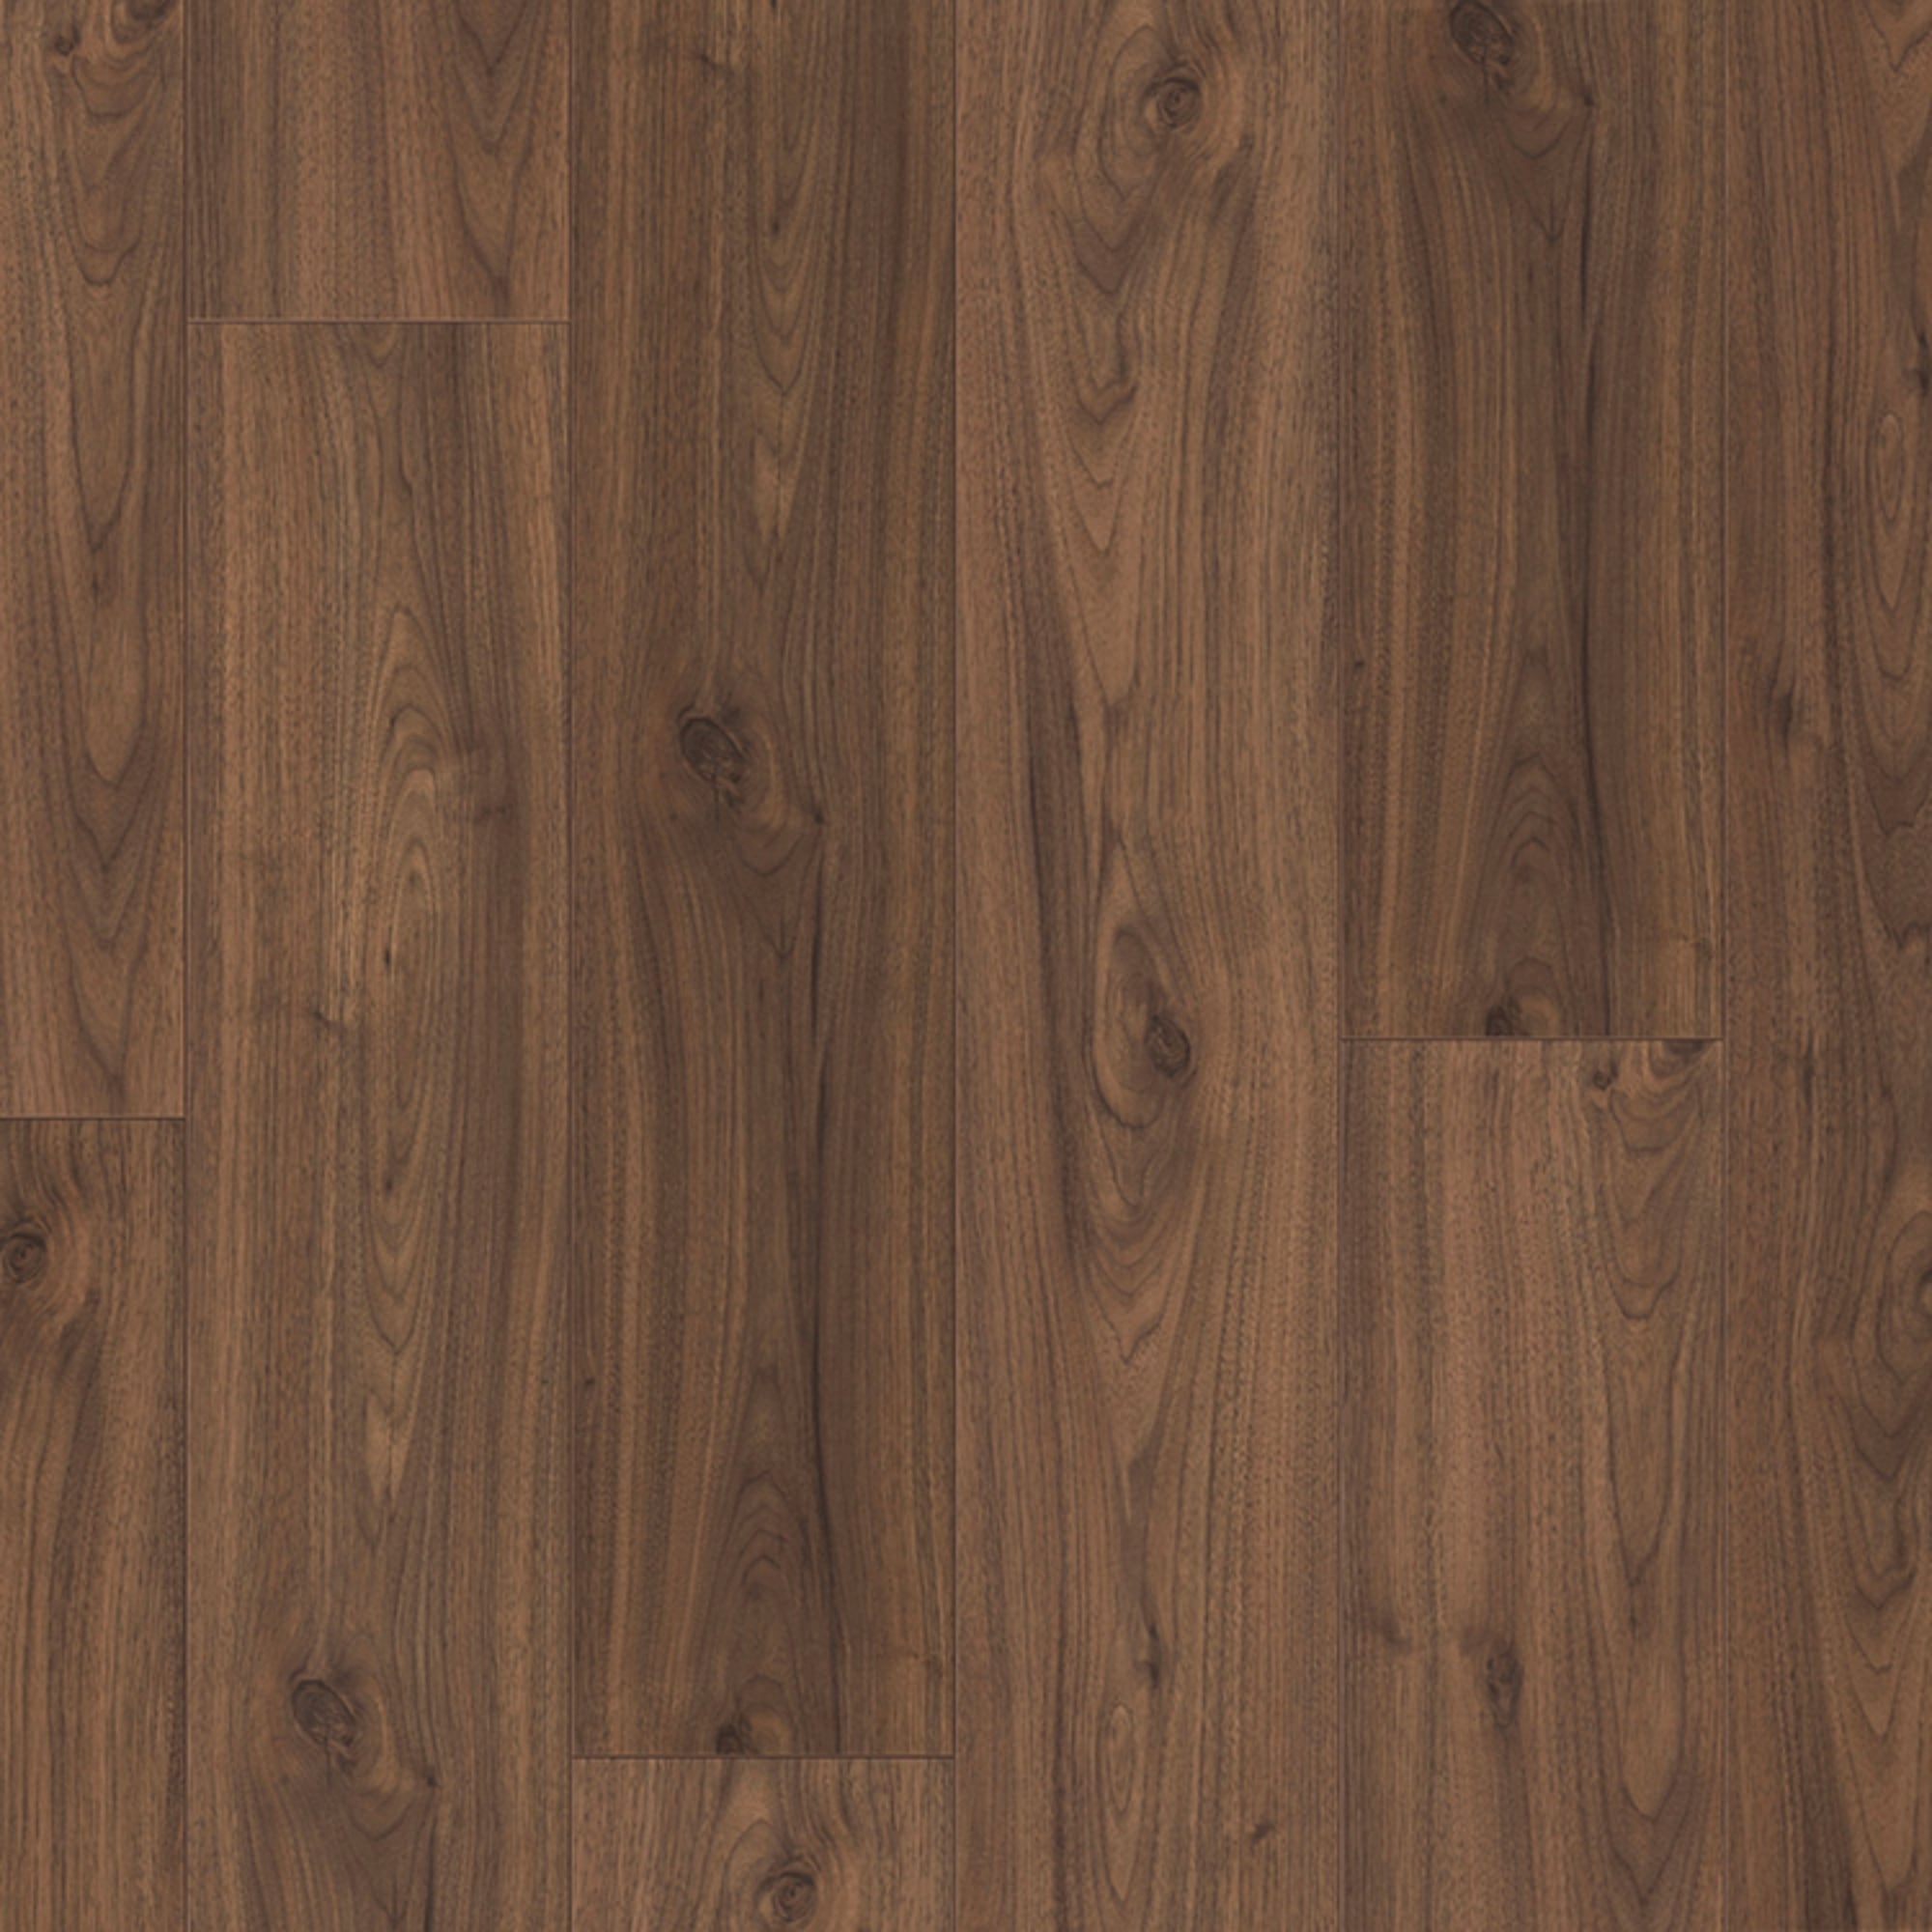 Wood flooring ld95 classic amore walnut laminate flooring for Walnut laminate flooring